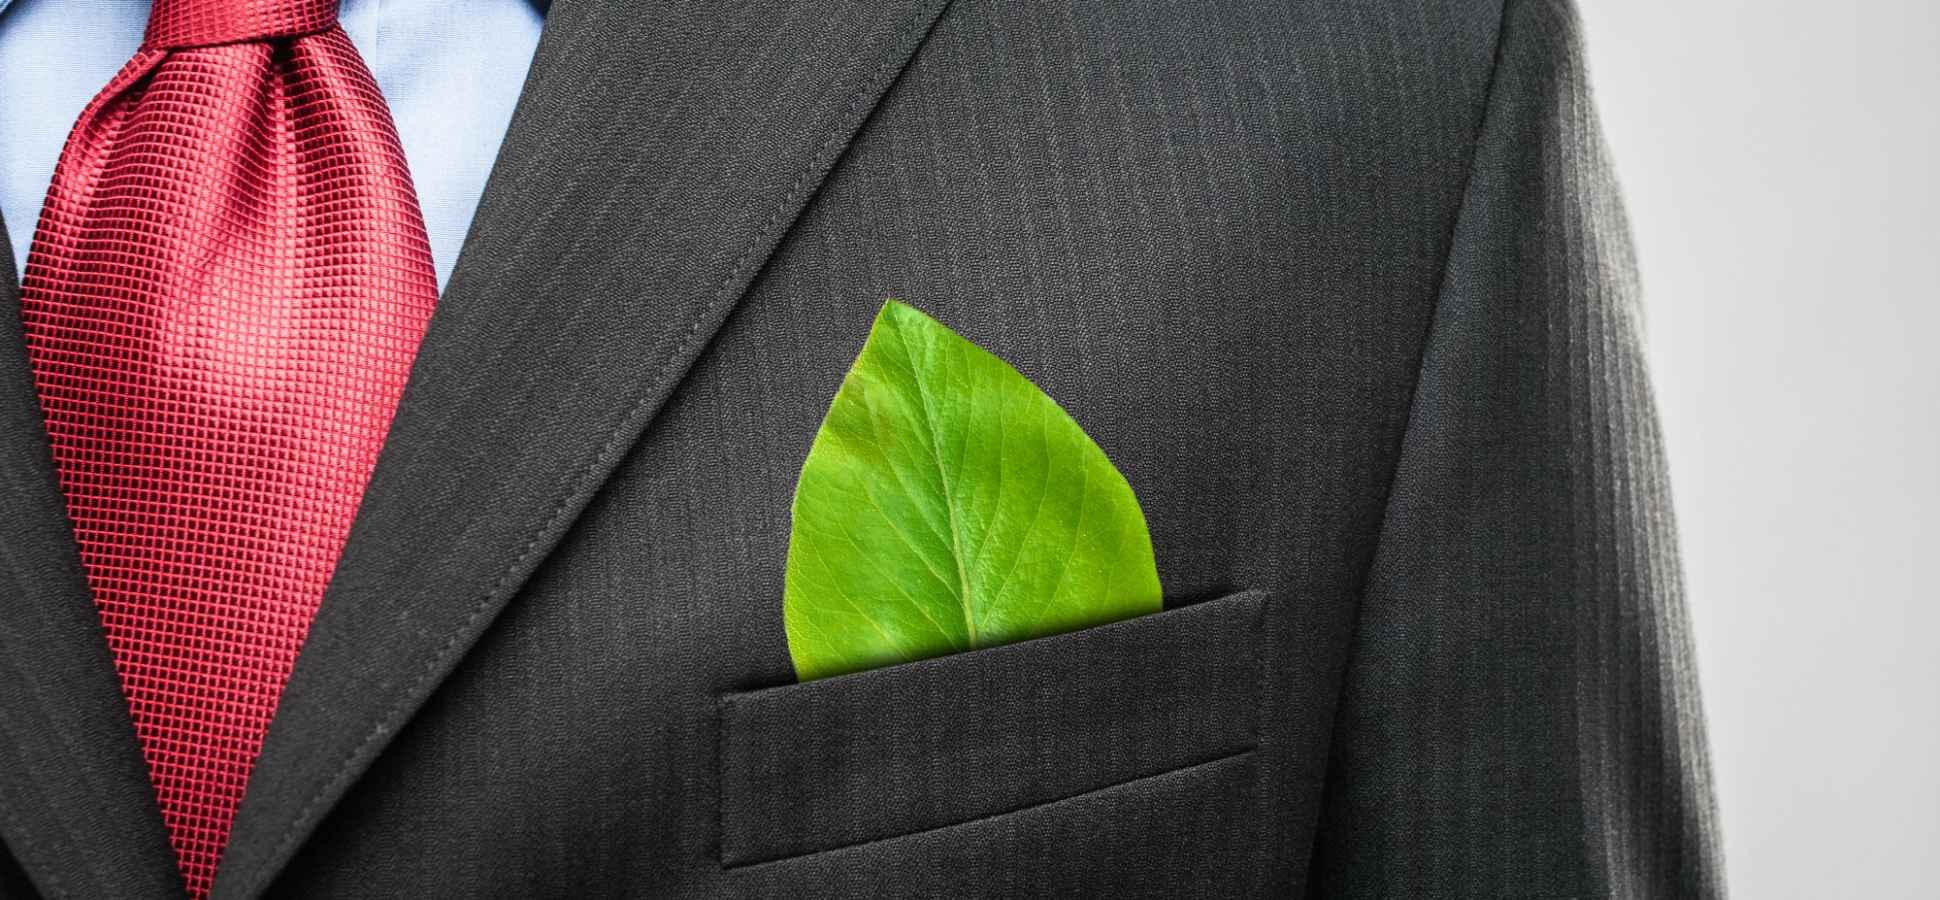 3 Ways Sustainability Helps the Environment and Your Business